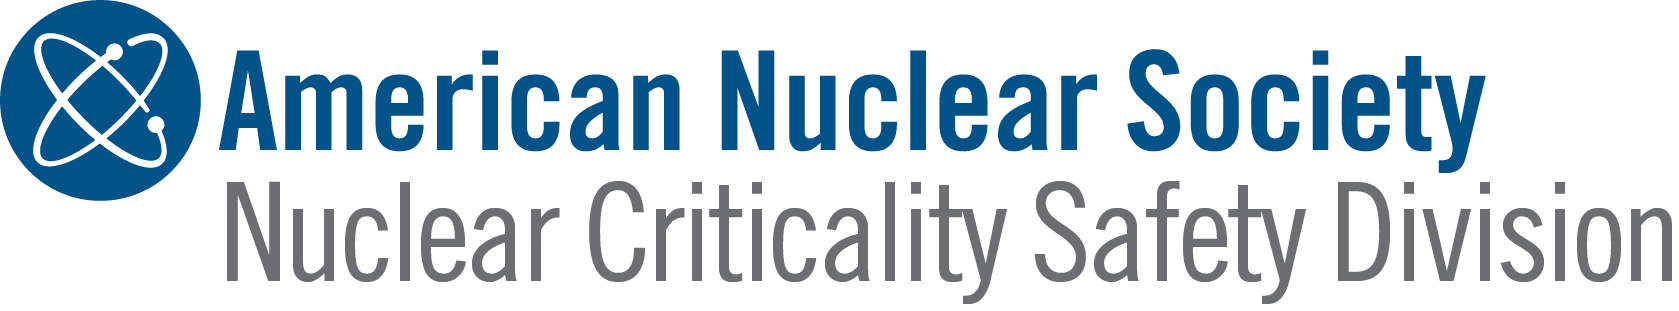 Nuclear Criticality Safety